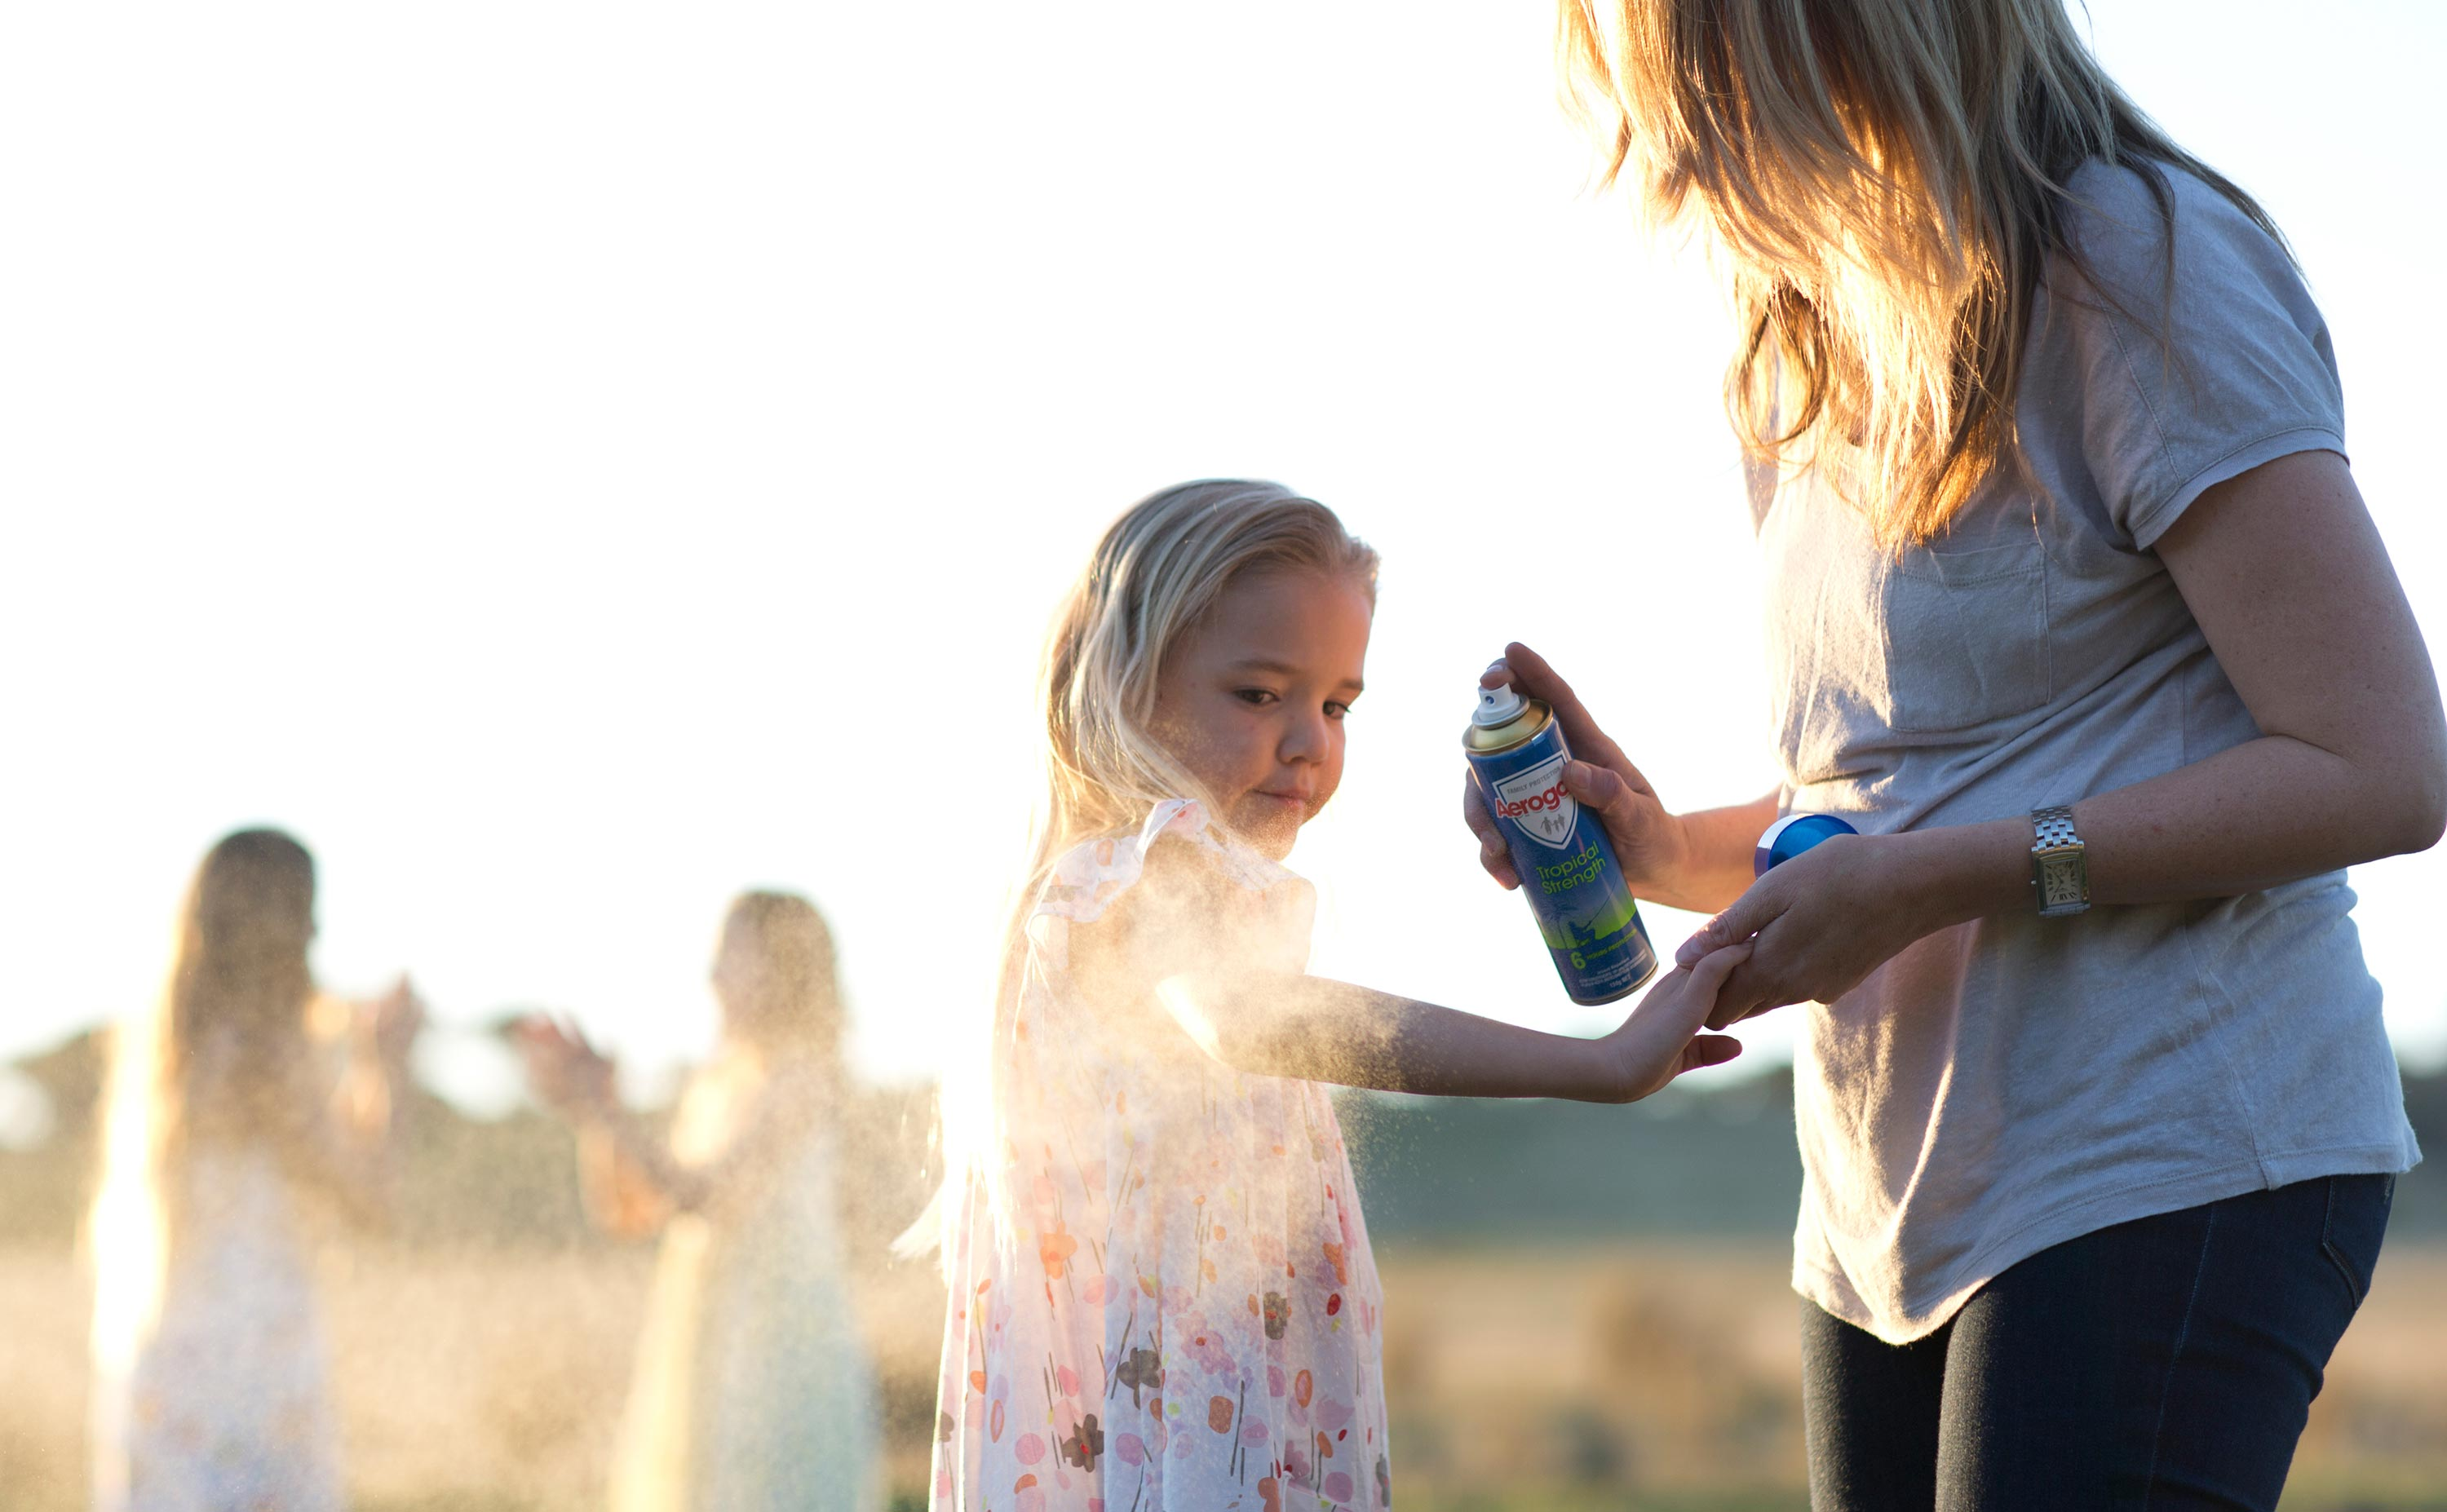 Woman spraying her daughter with Aerogard, an insect repellant